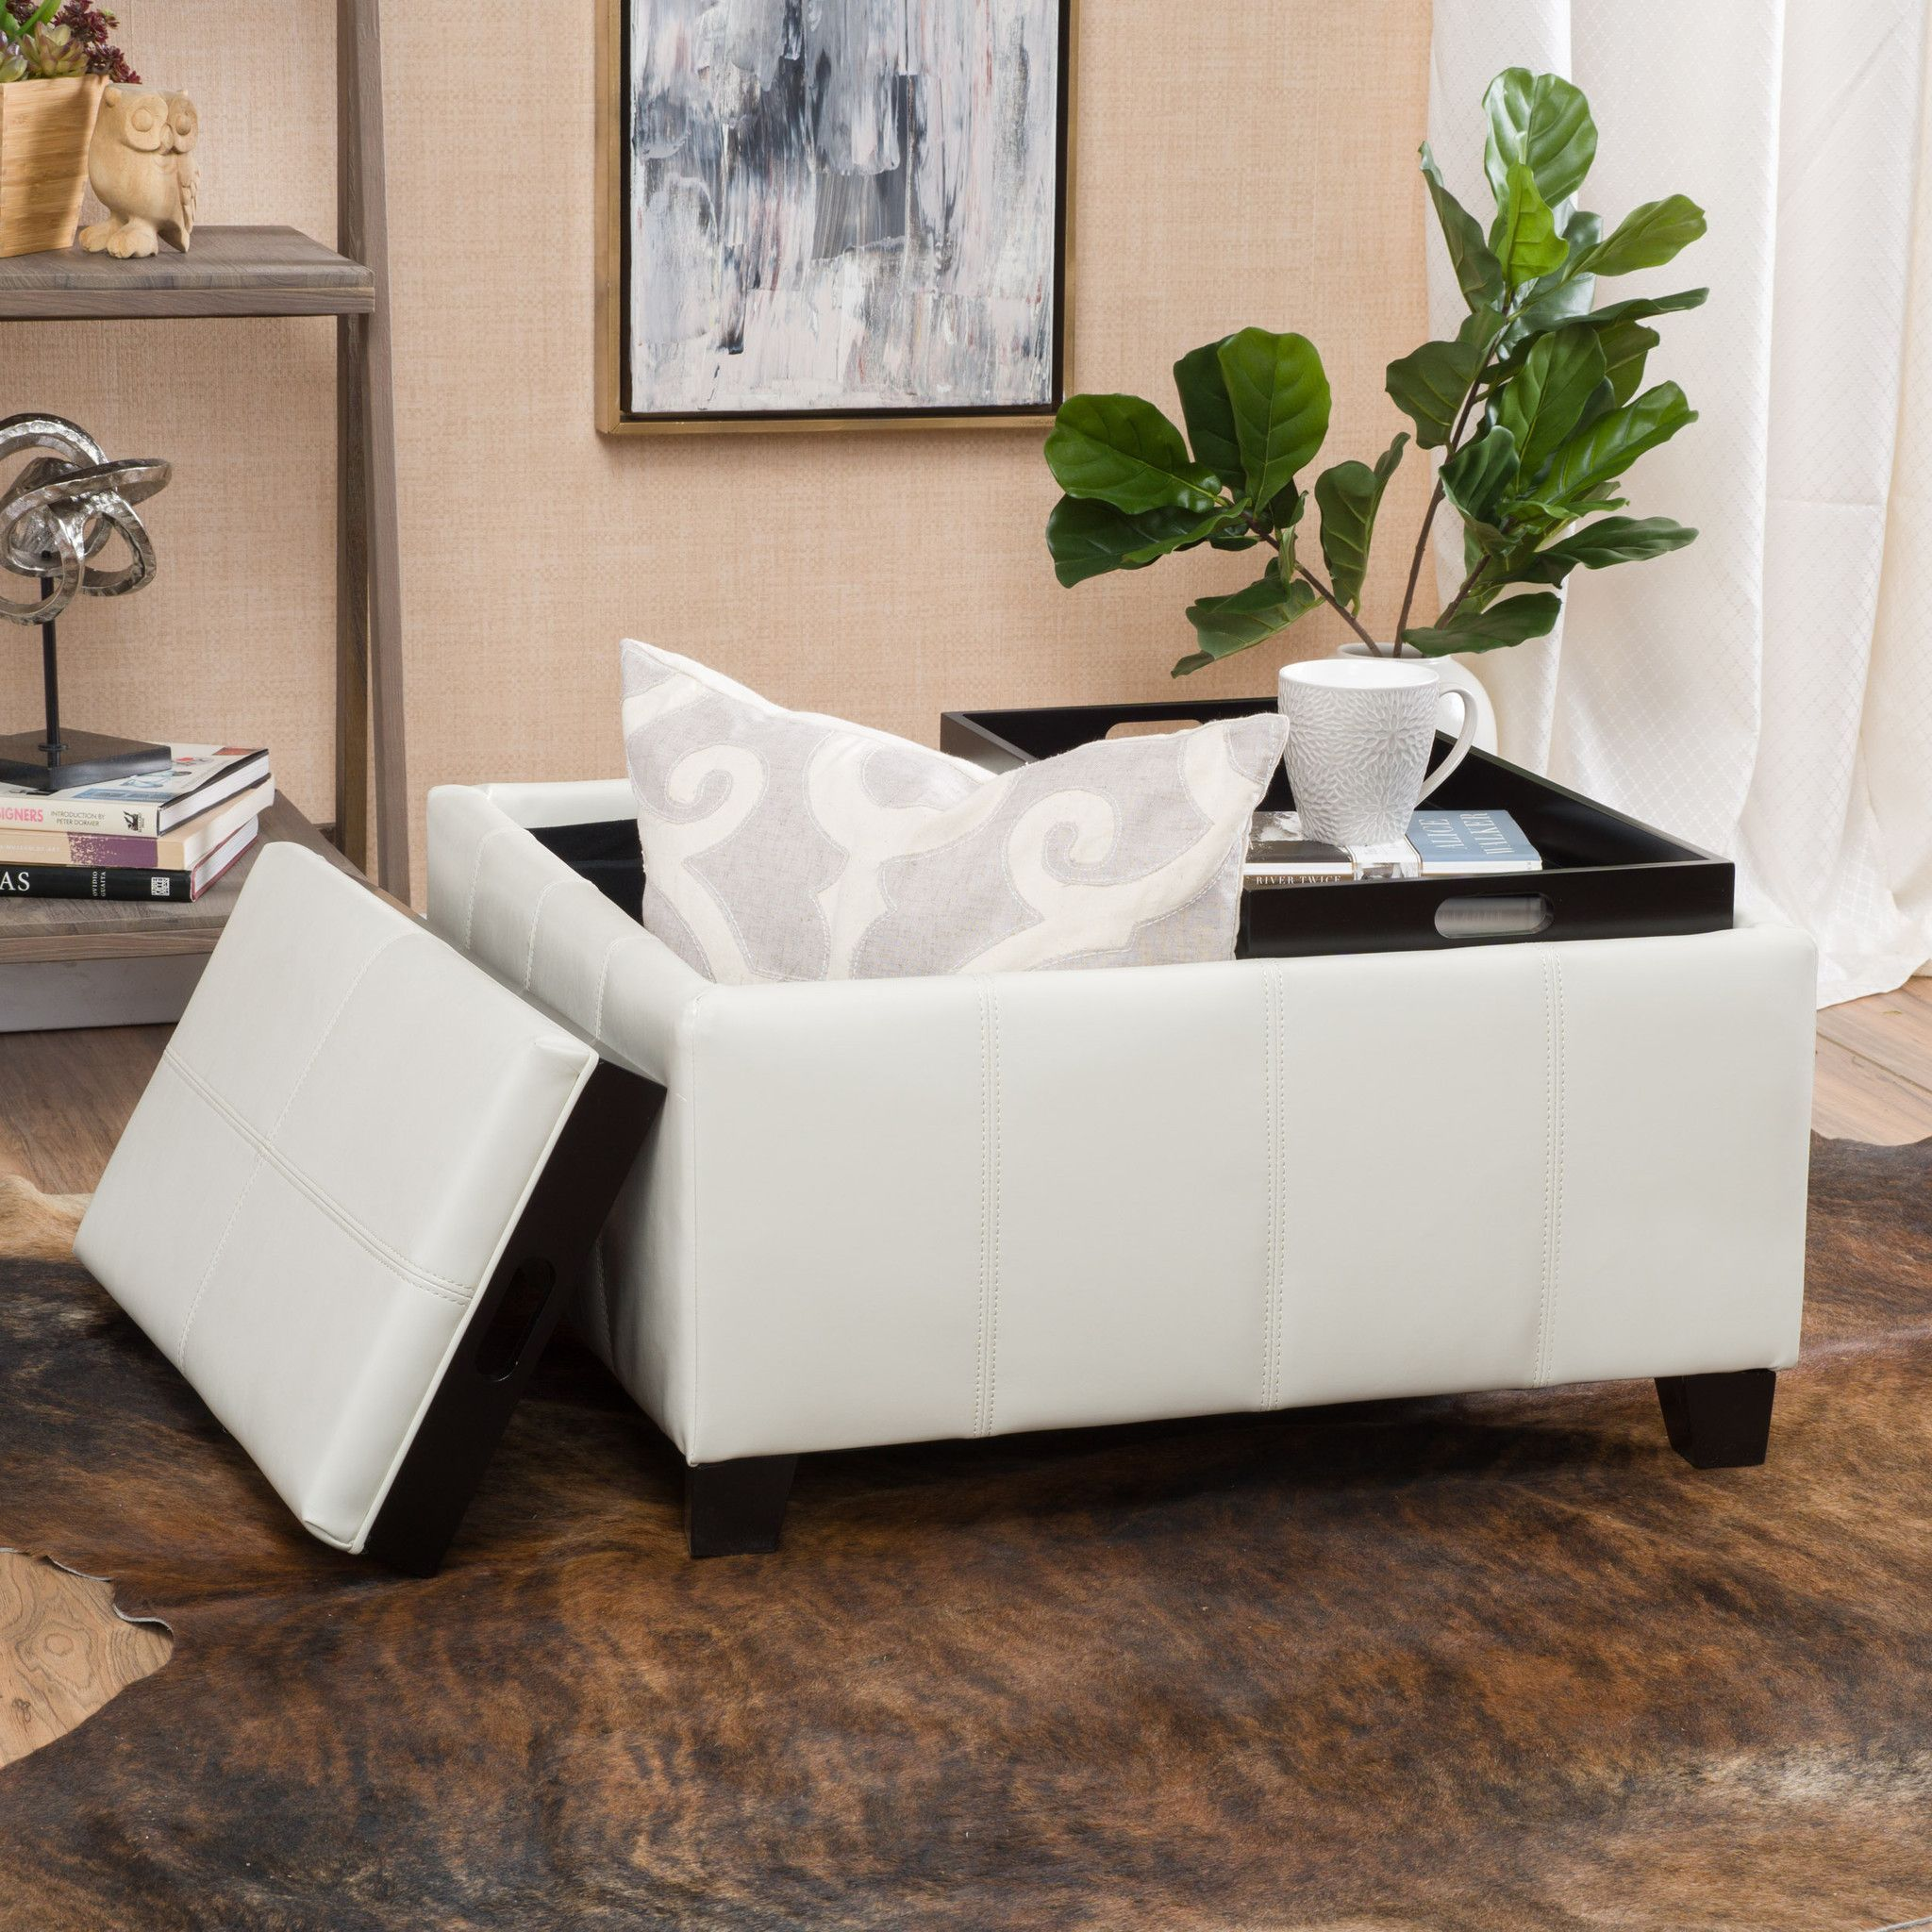 Justin 2-Tray-Top Ivory Leather Ottoman Coffee Table w/ Storage